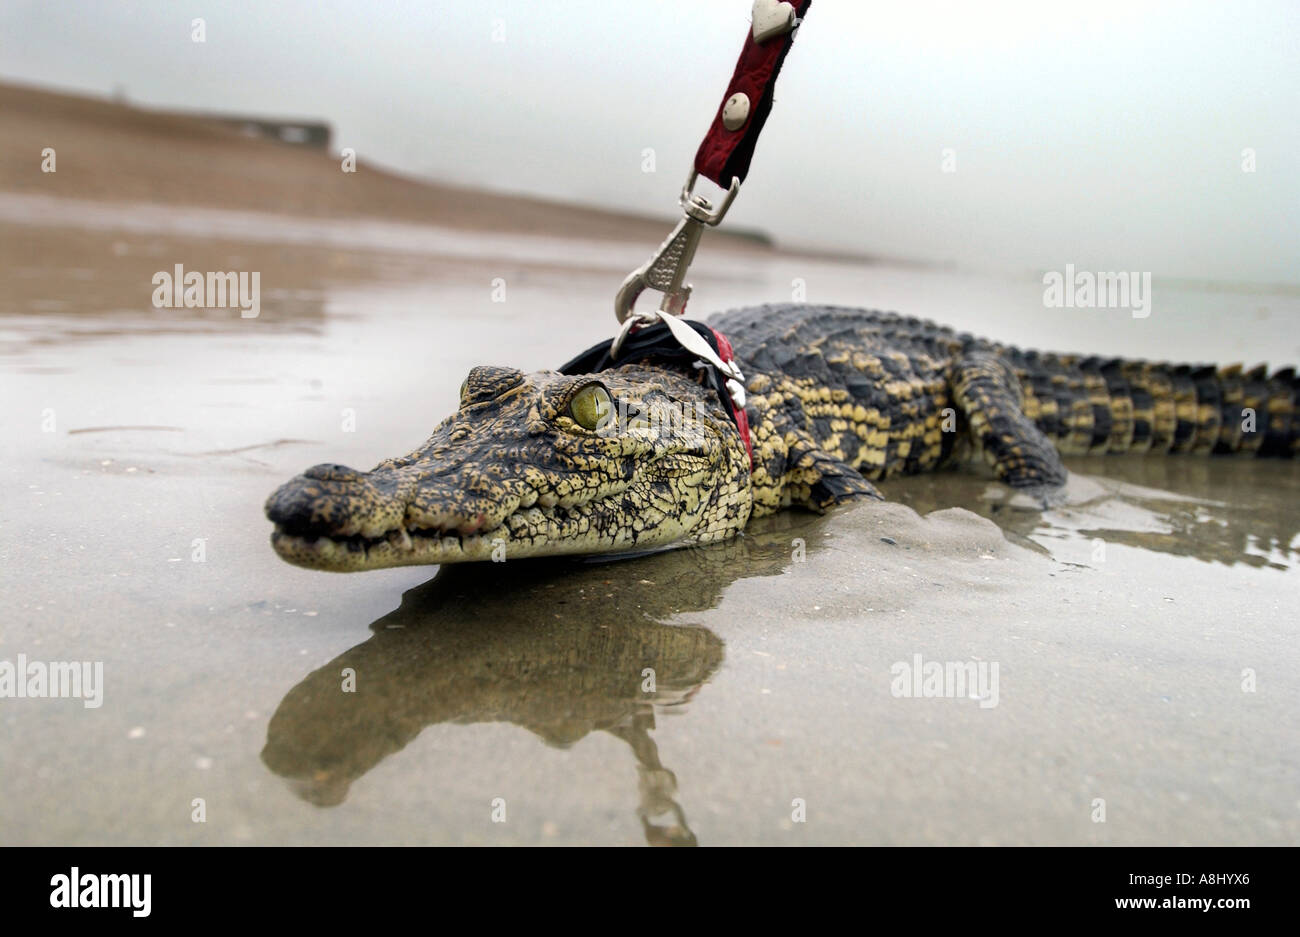 a baby crocodile called aswas taking a dip in the sea at brighton